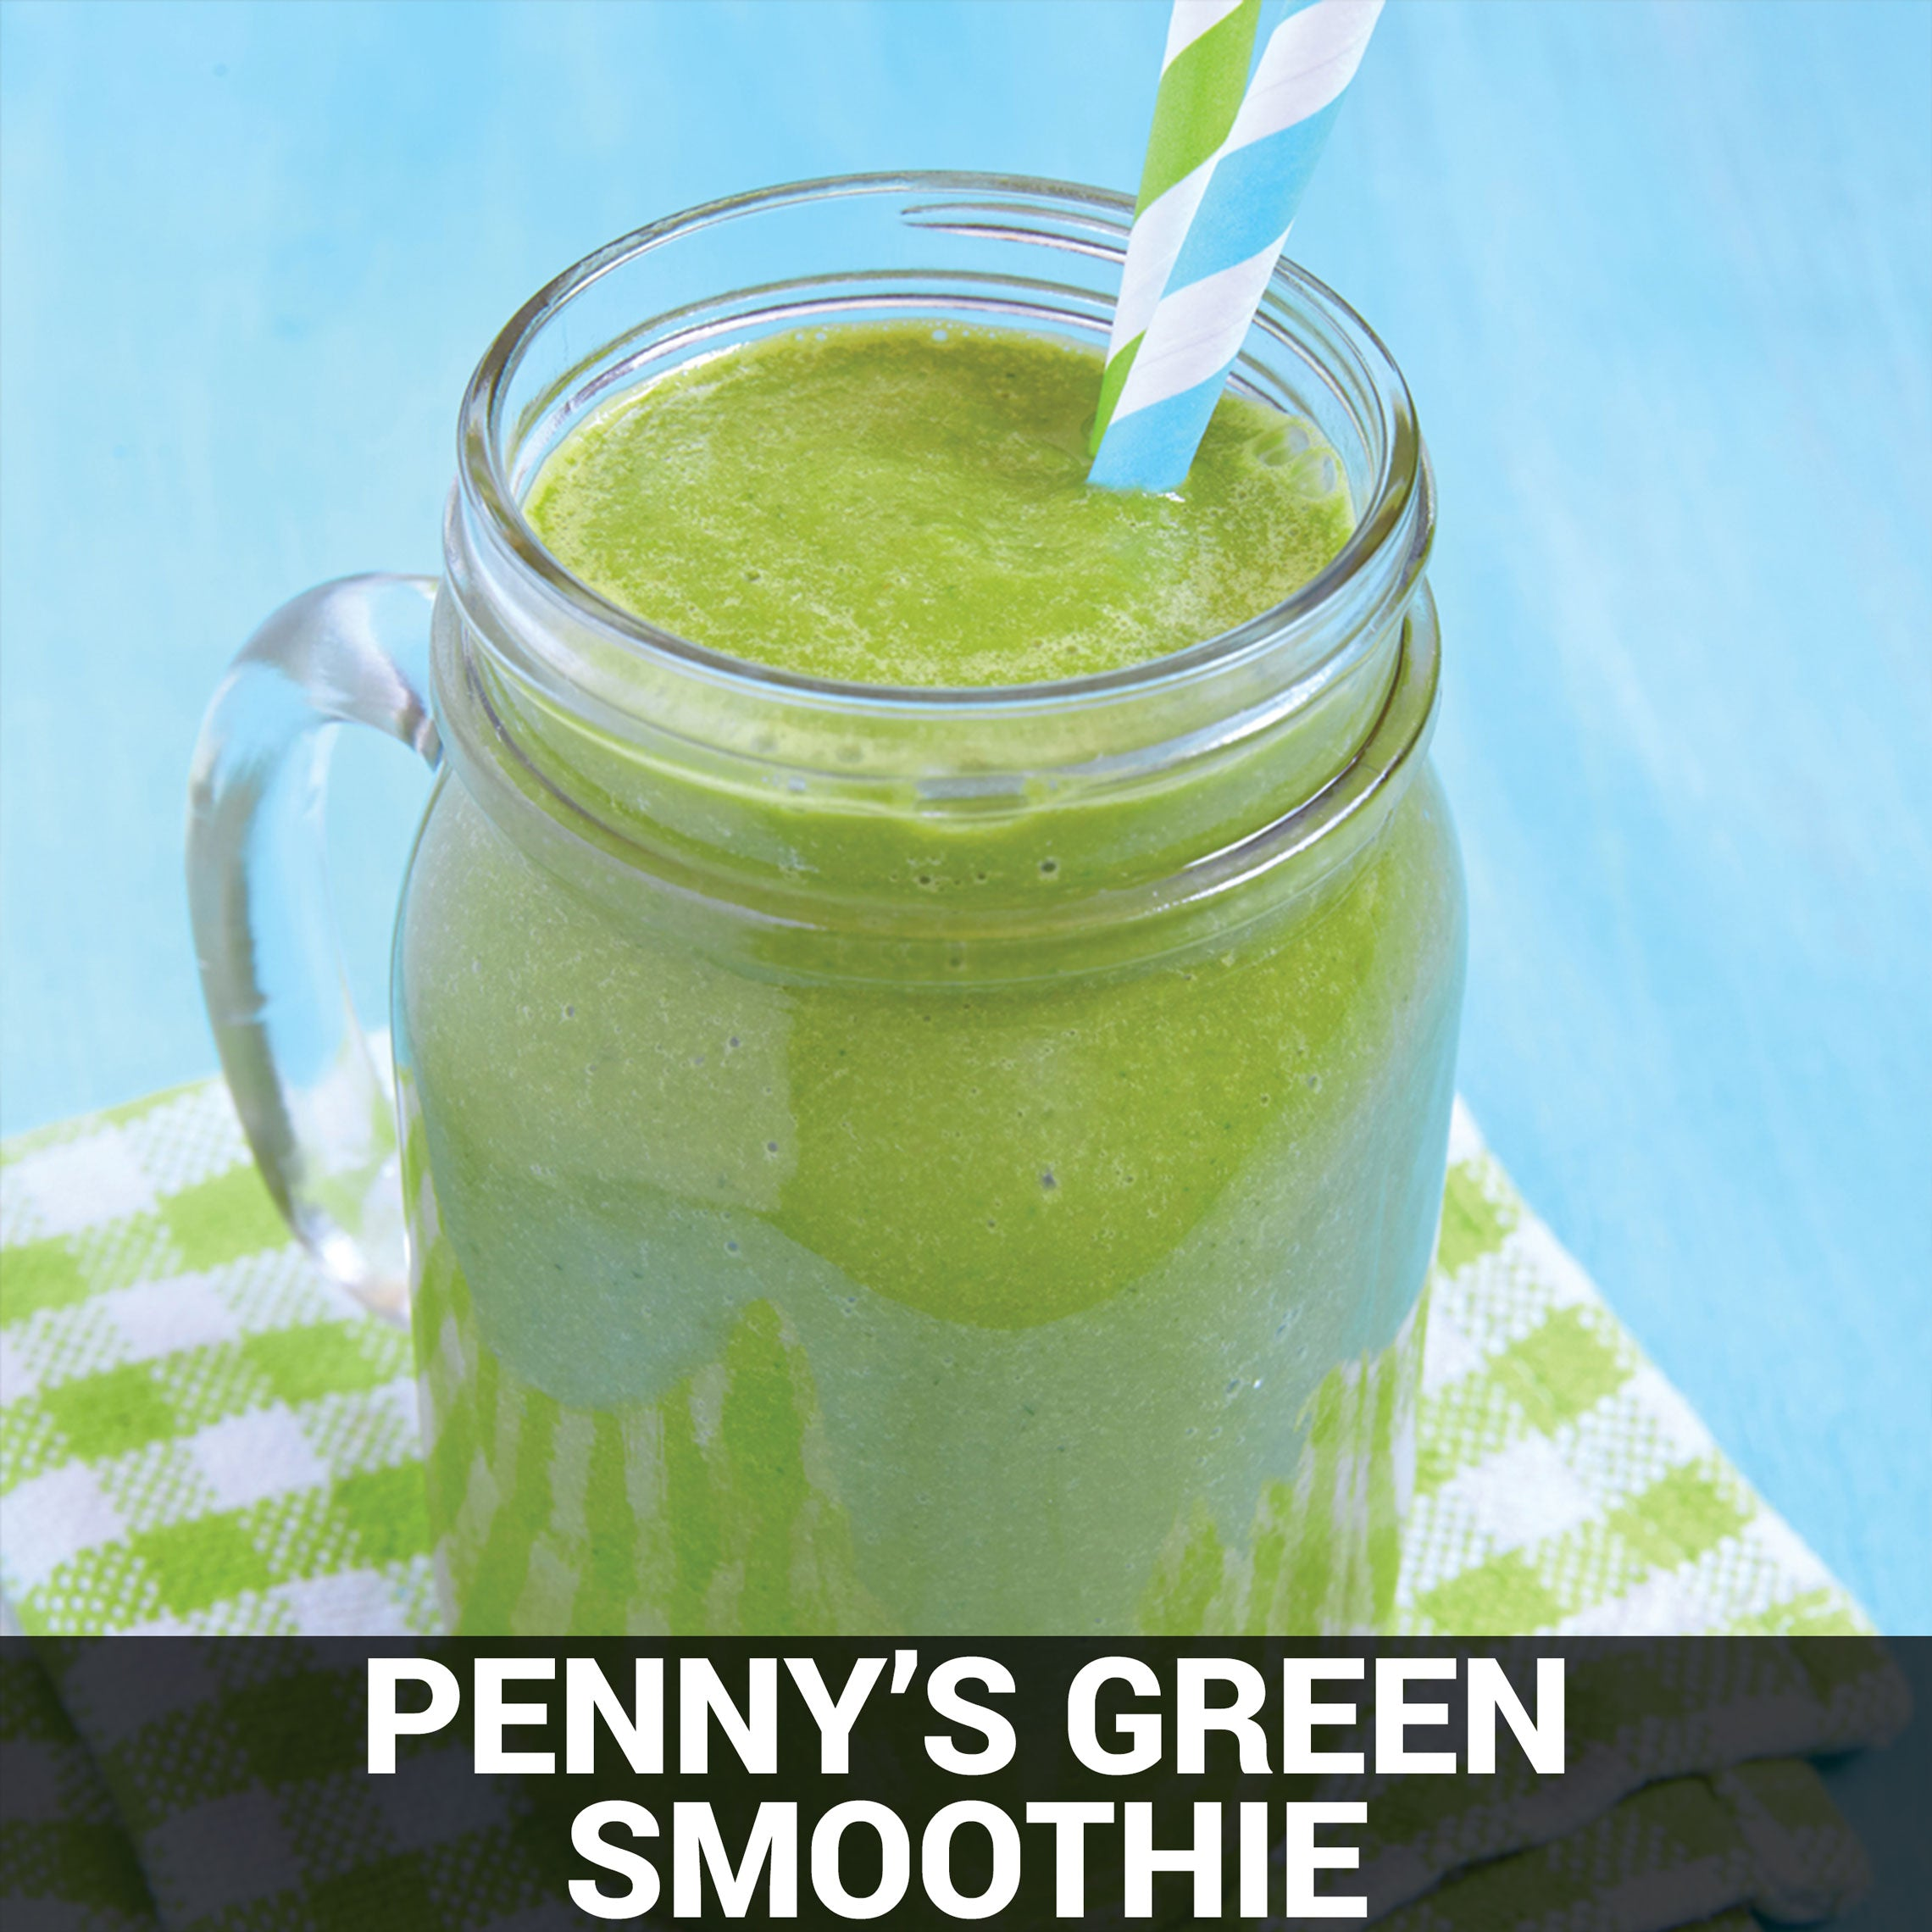 Penny's Green Smoothie Recipe - Foods Alive